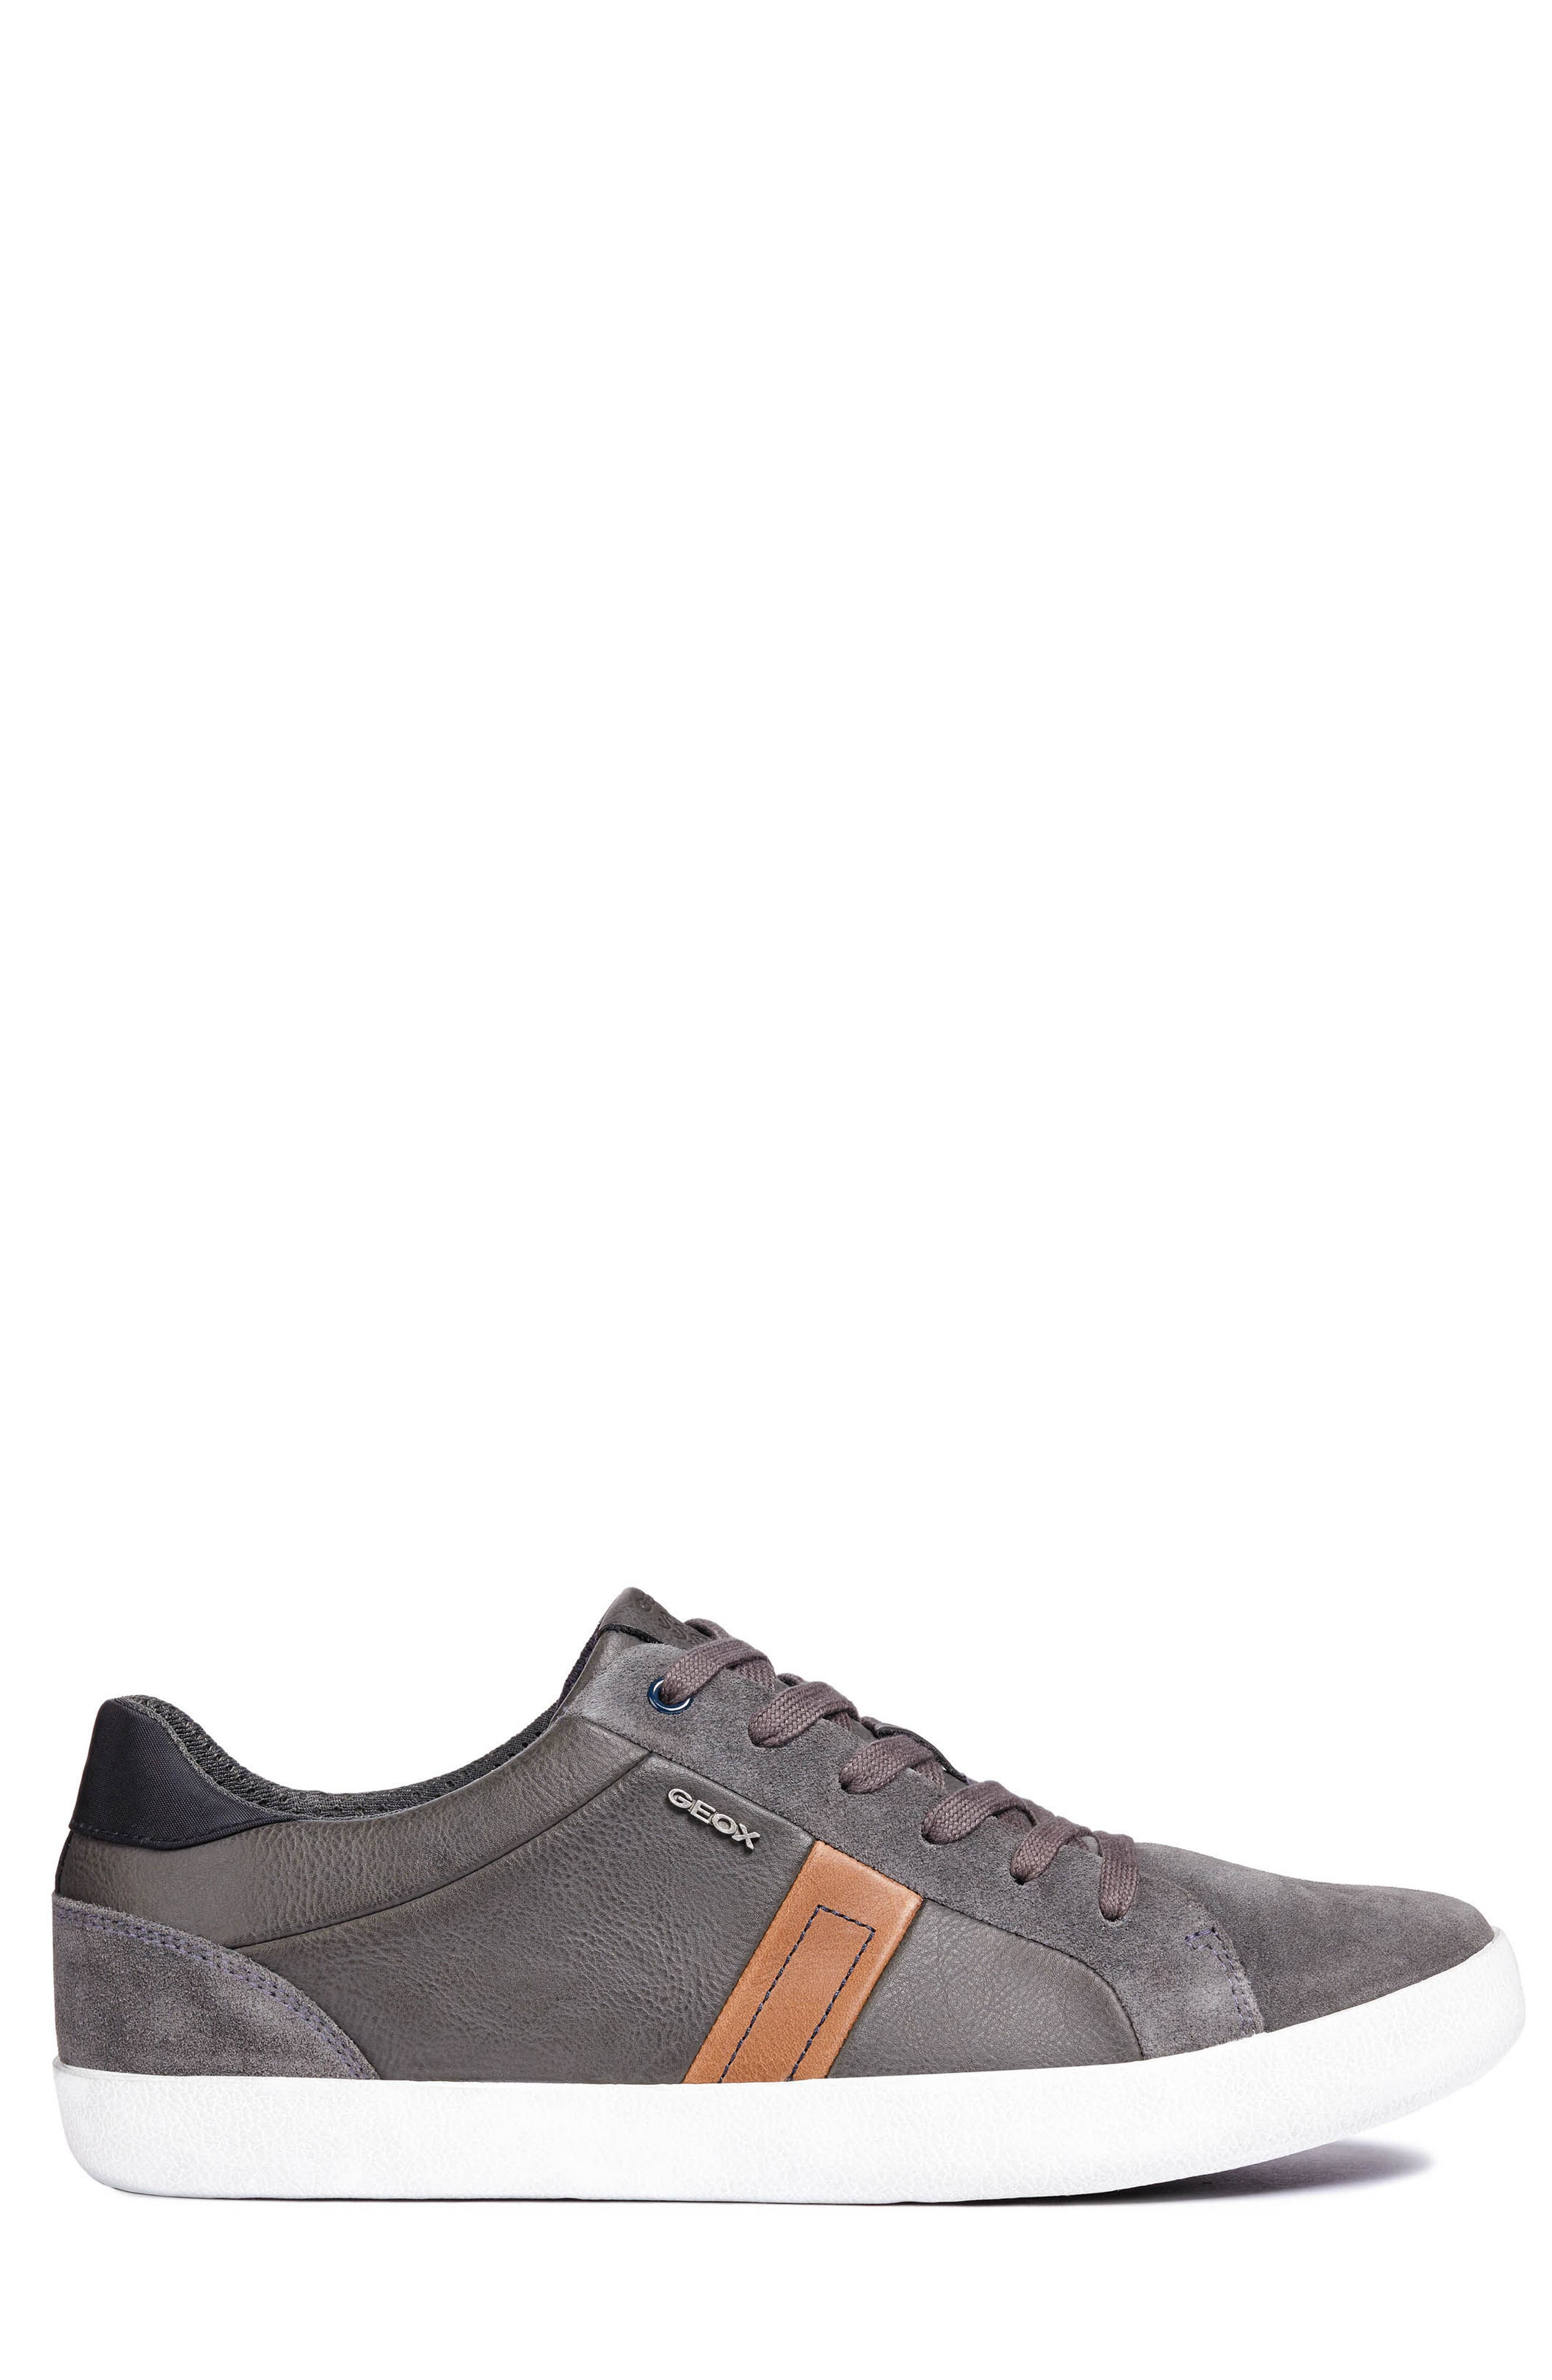 Box 40 Low Top Sneaker,                             Alternate thumbnail 3, color,                             ANTHRACITE LEATHER